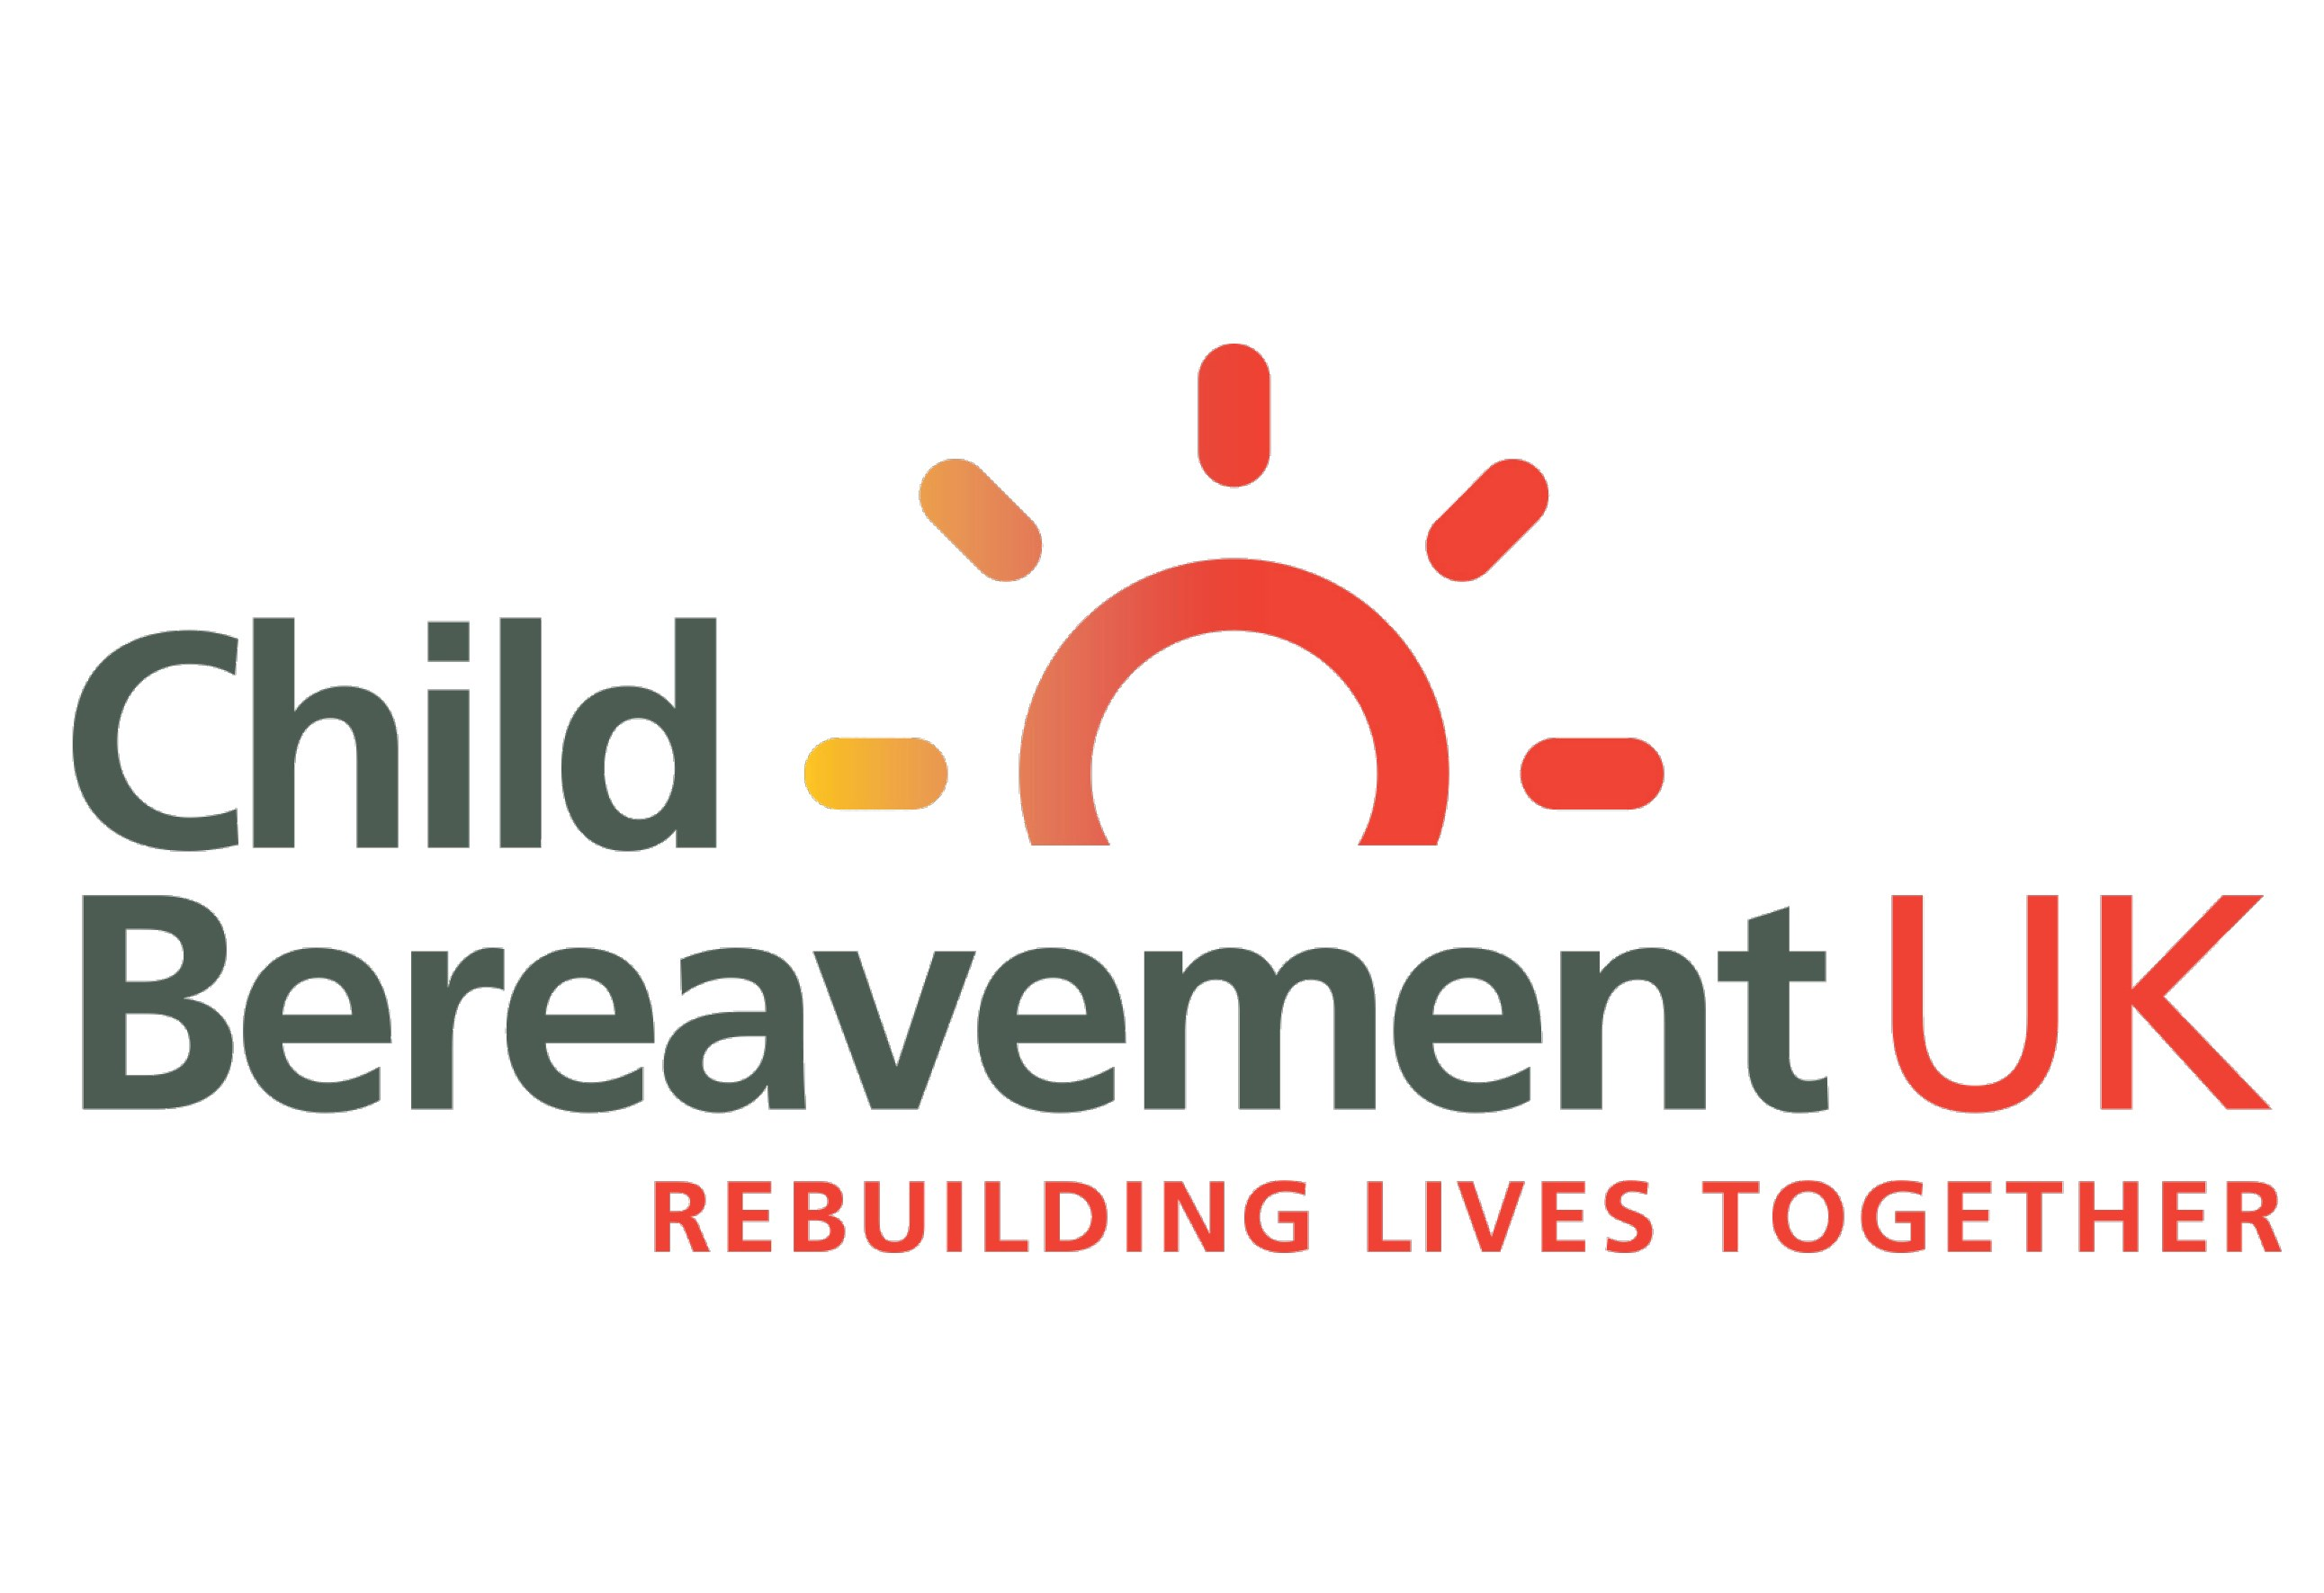 Child Bereavement UK.jpg